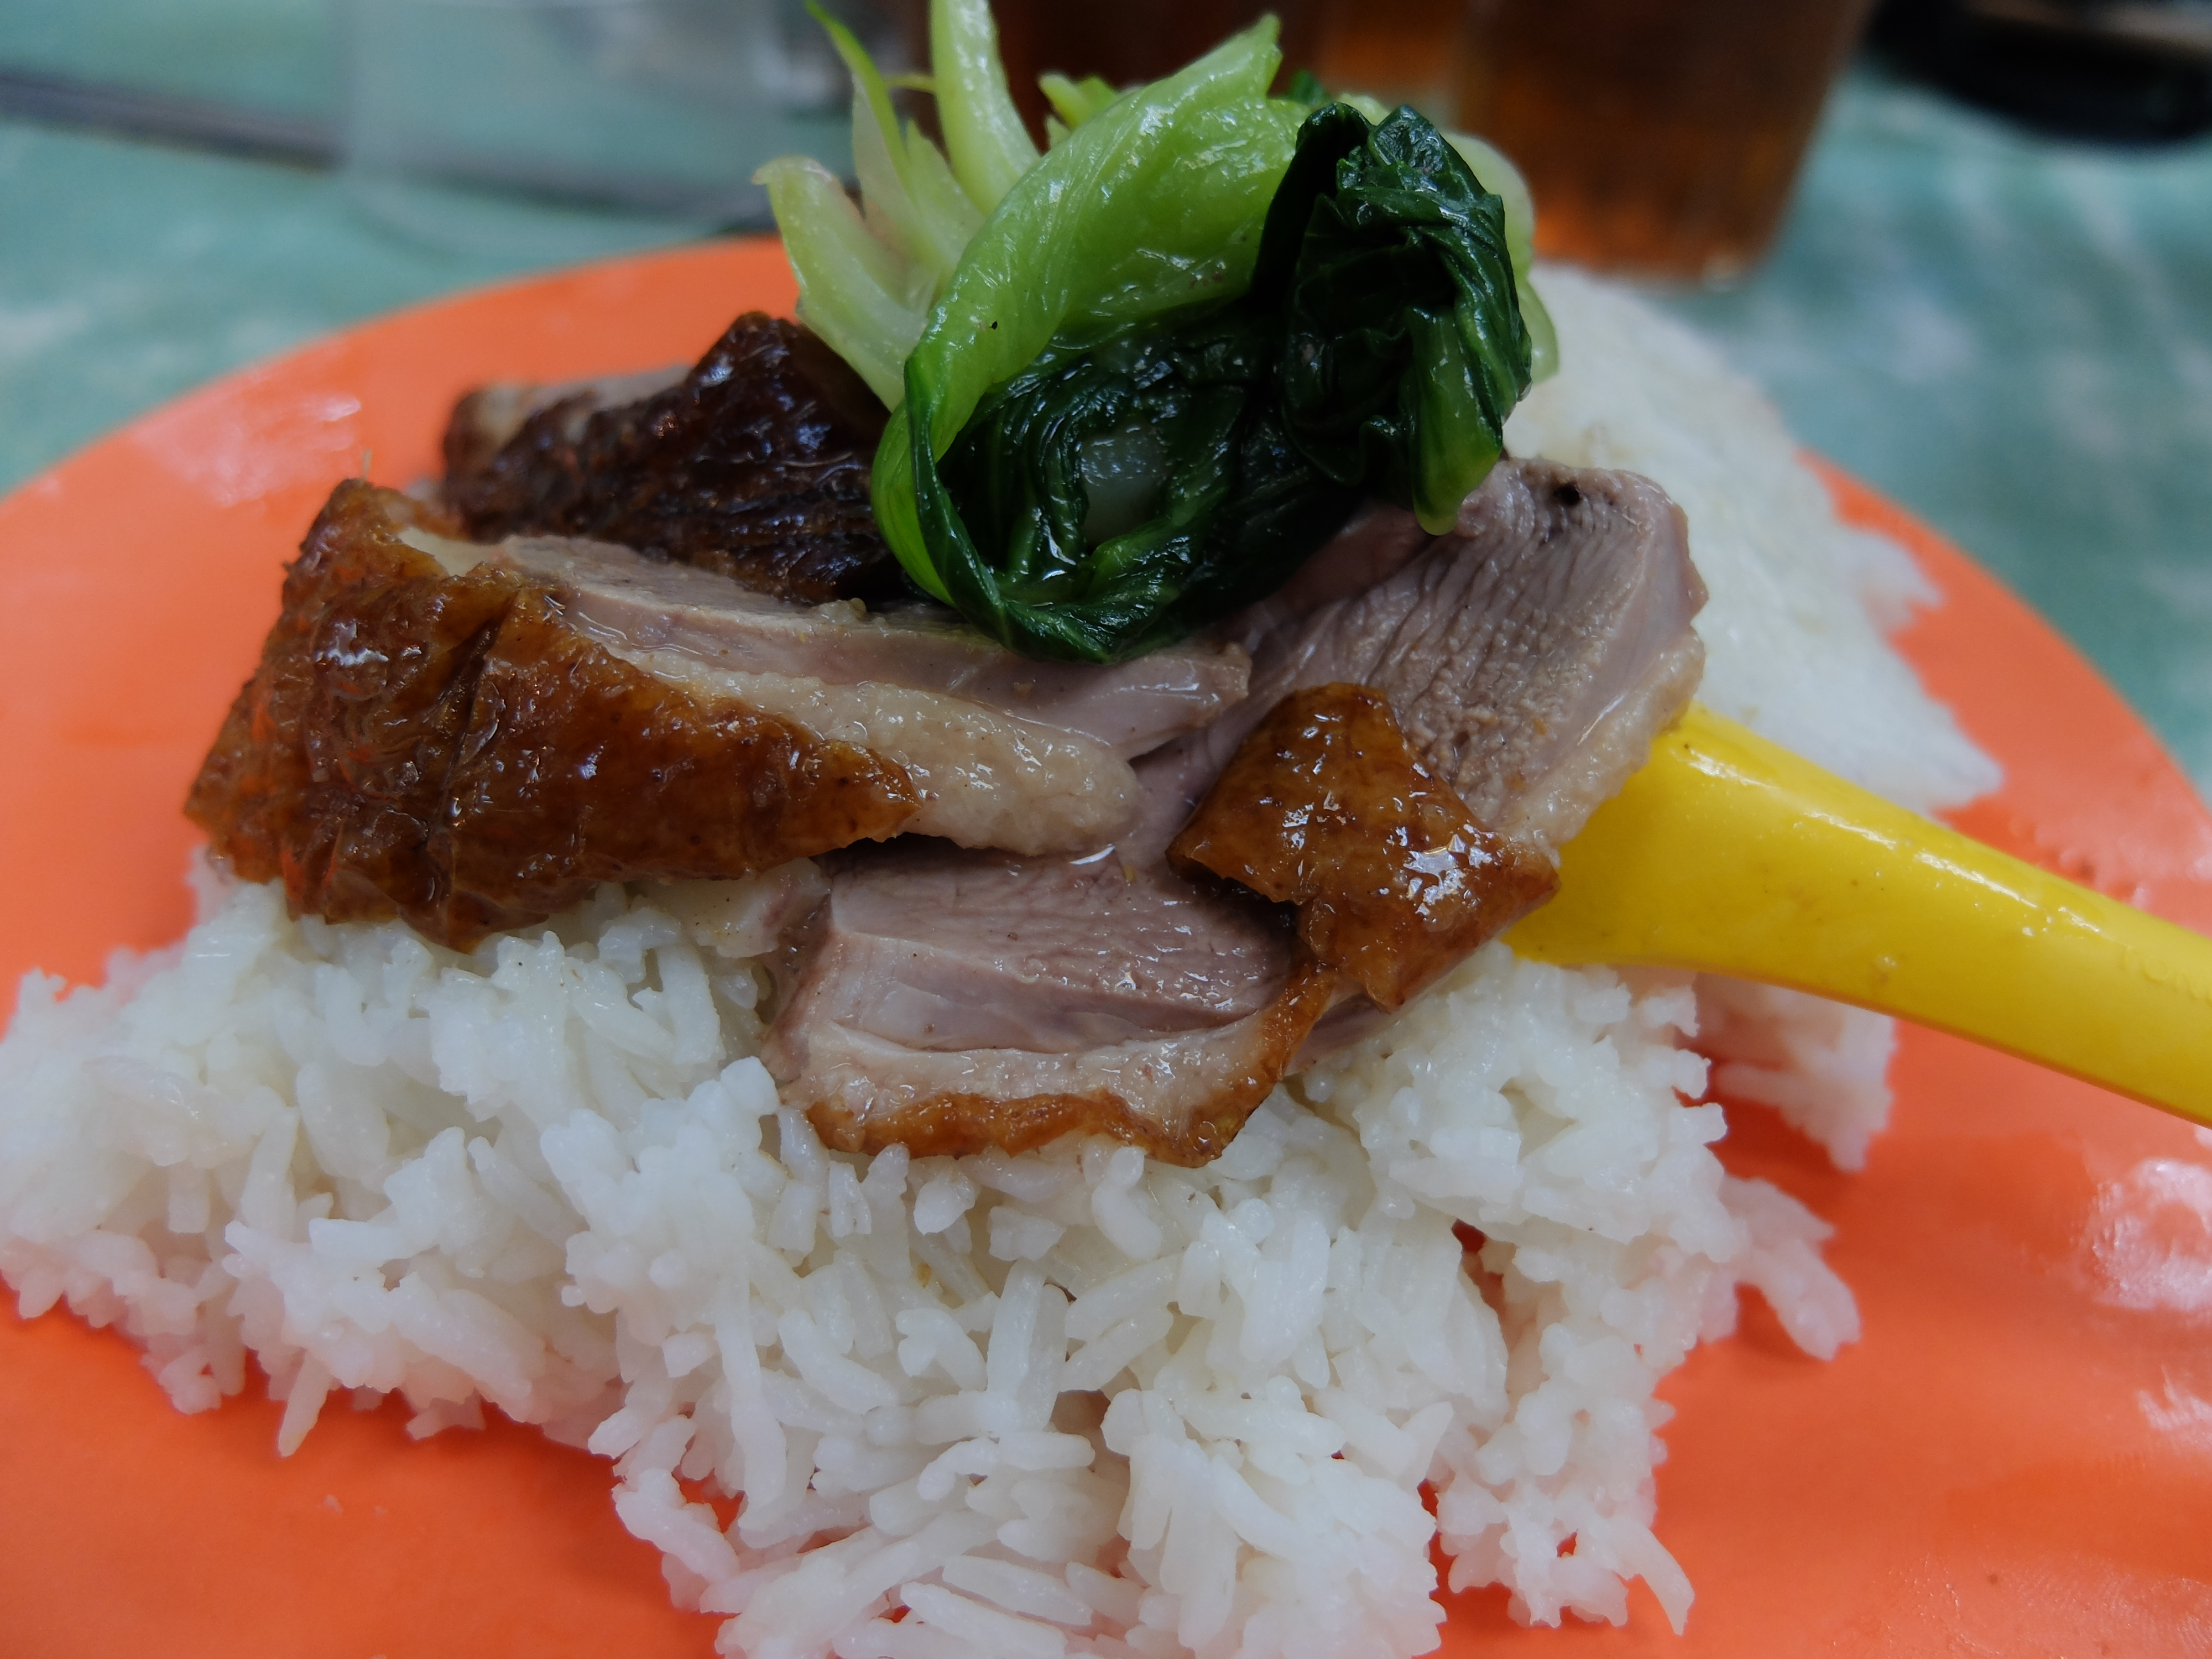 Wai_Kee_Curry_-_Roast_Duck_with_Rice_xkpig1